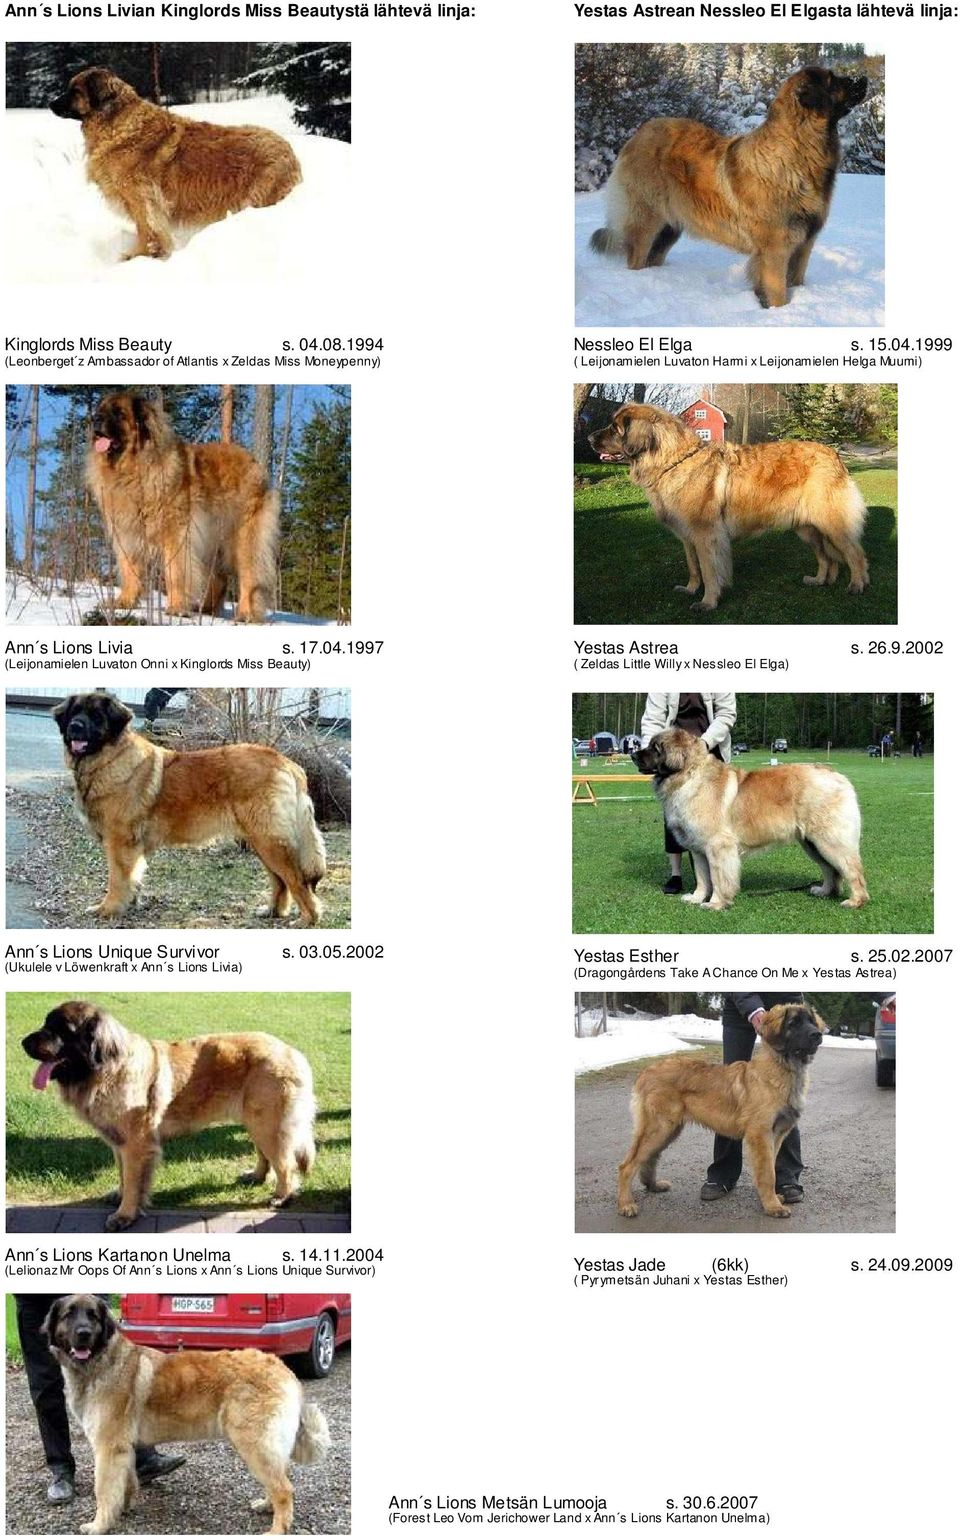 26.9.2002 ( Zeldas Little Willy x Nessleo El Elga) Ann s Lions Unique Survivor s. 03.05.2002 (Ukulele v Löwenkraft x Ann s Lions Livia) Yestas Esther s. 25.02.2007 (Dragongårdens Take A Chance On Me x Yestas Astrea) Ann s Lions Kartanon Unelma s.